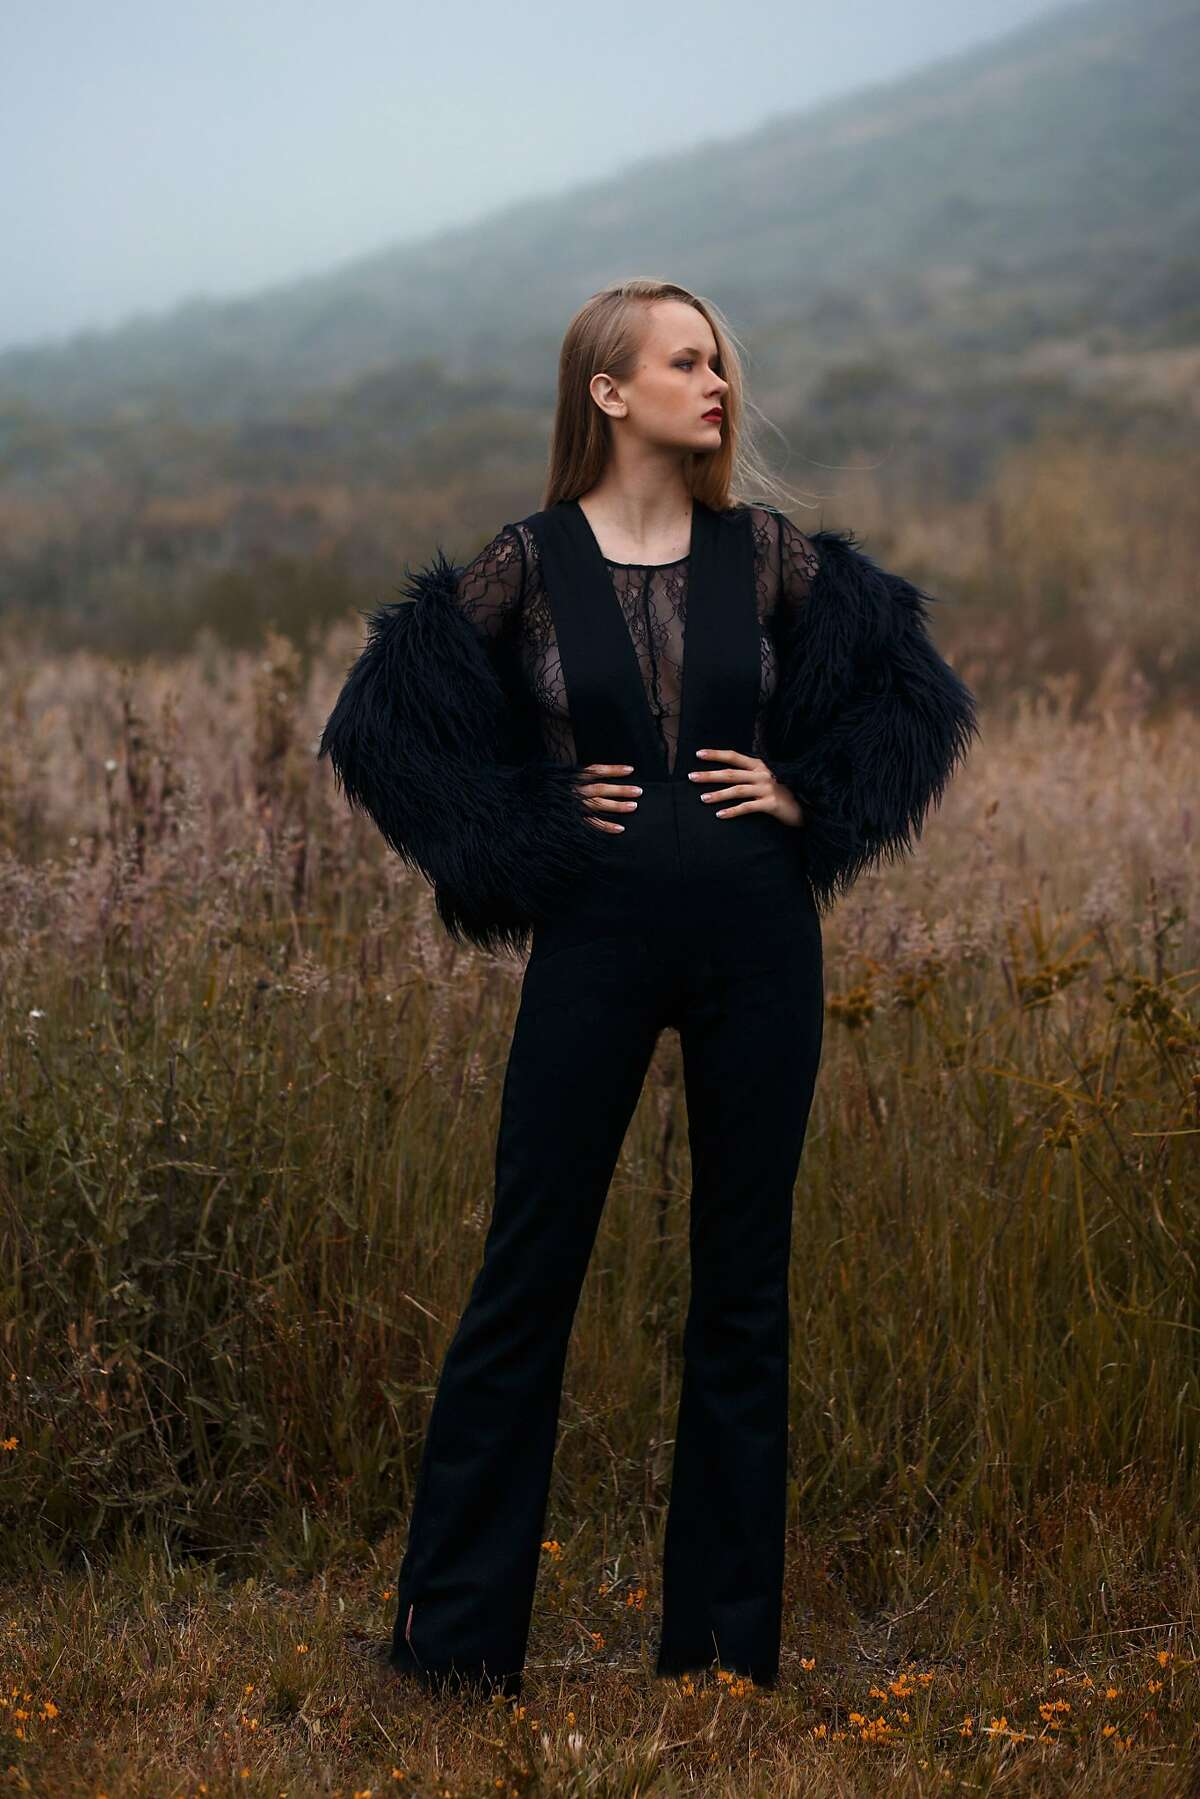 Pieces from�Vanessalynne Hattar�s Fall/Winter 2017 collection included midi dresses, a high-waisted jumpsuit and a sweater.